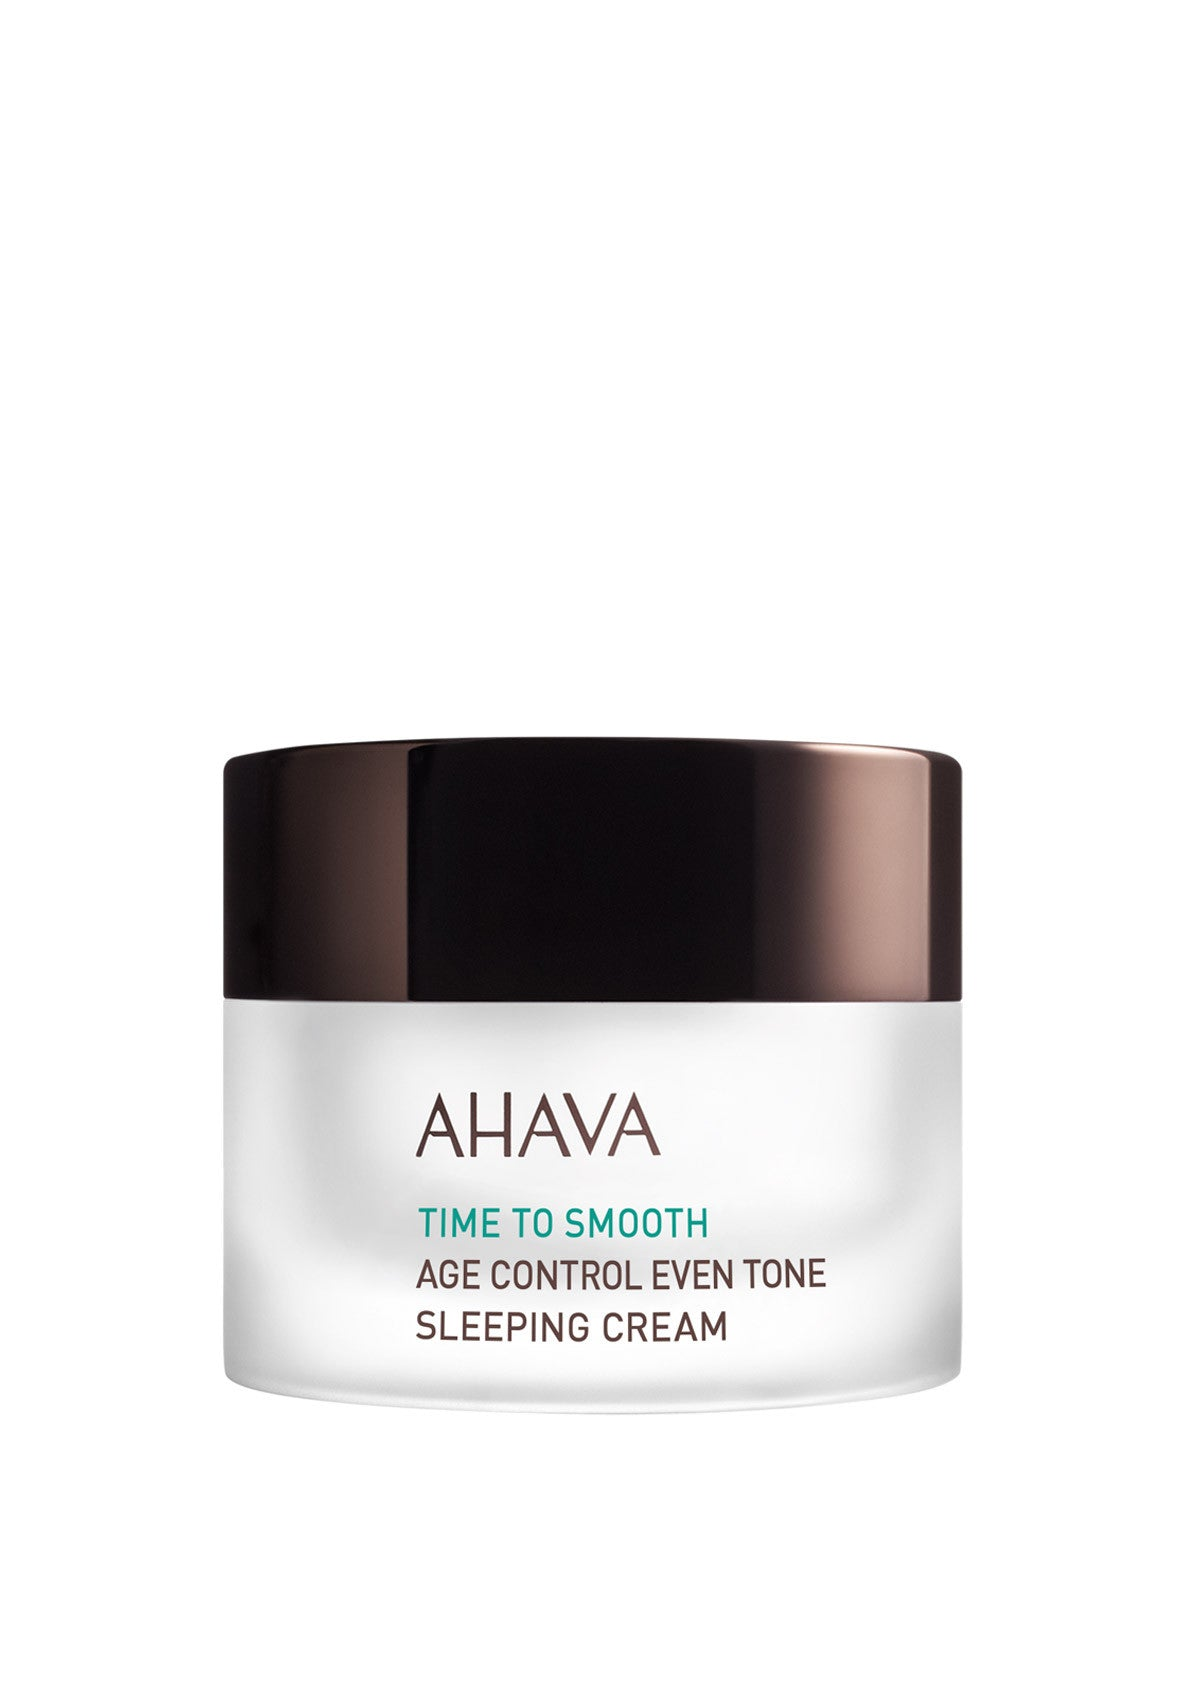 AHAVA - Age Control Even Tone Sleeping Cream - DeadSeaShop.co.uk